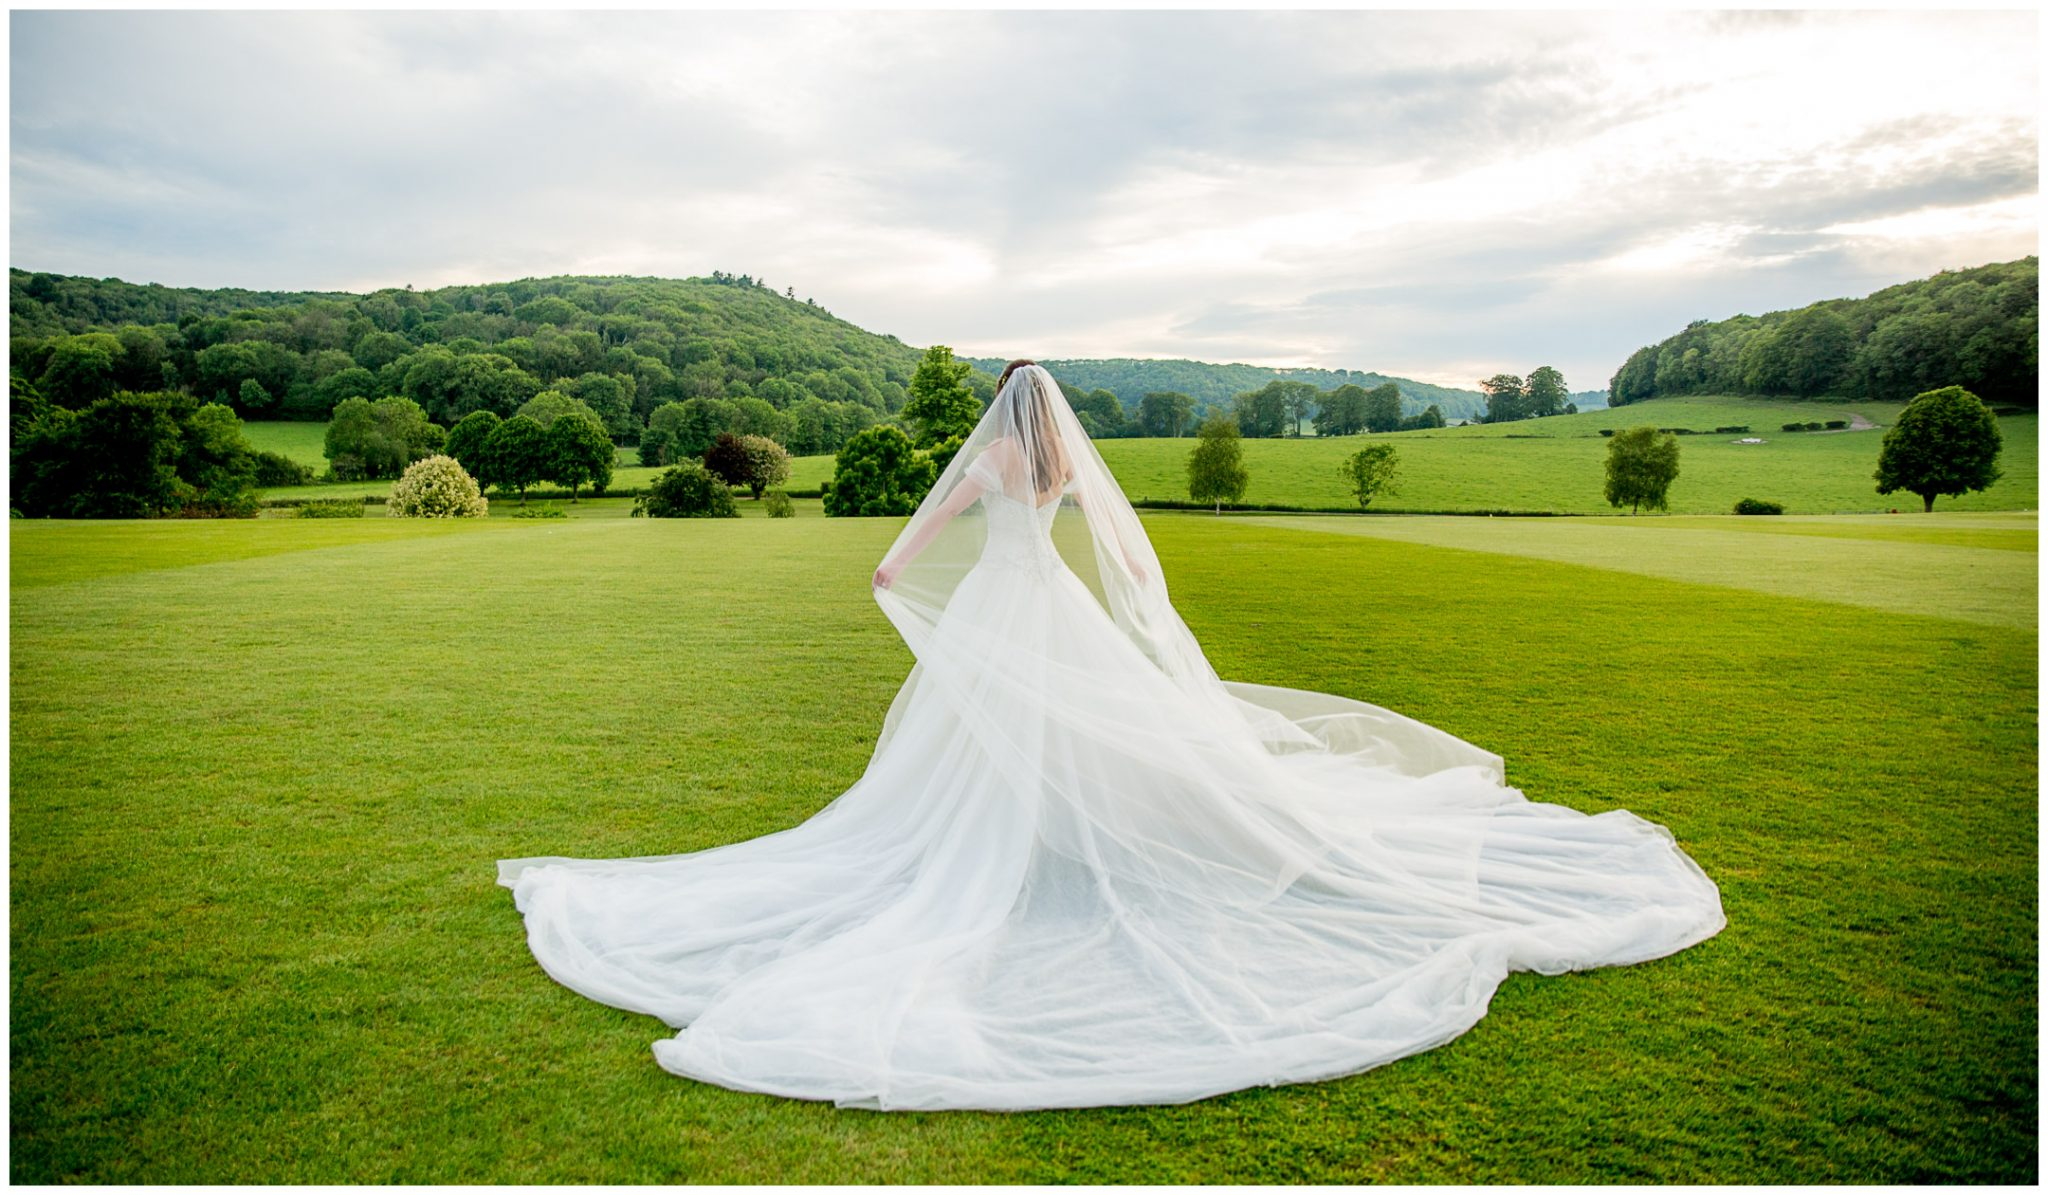 The bride's dress fanned out as she walks across the lawn